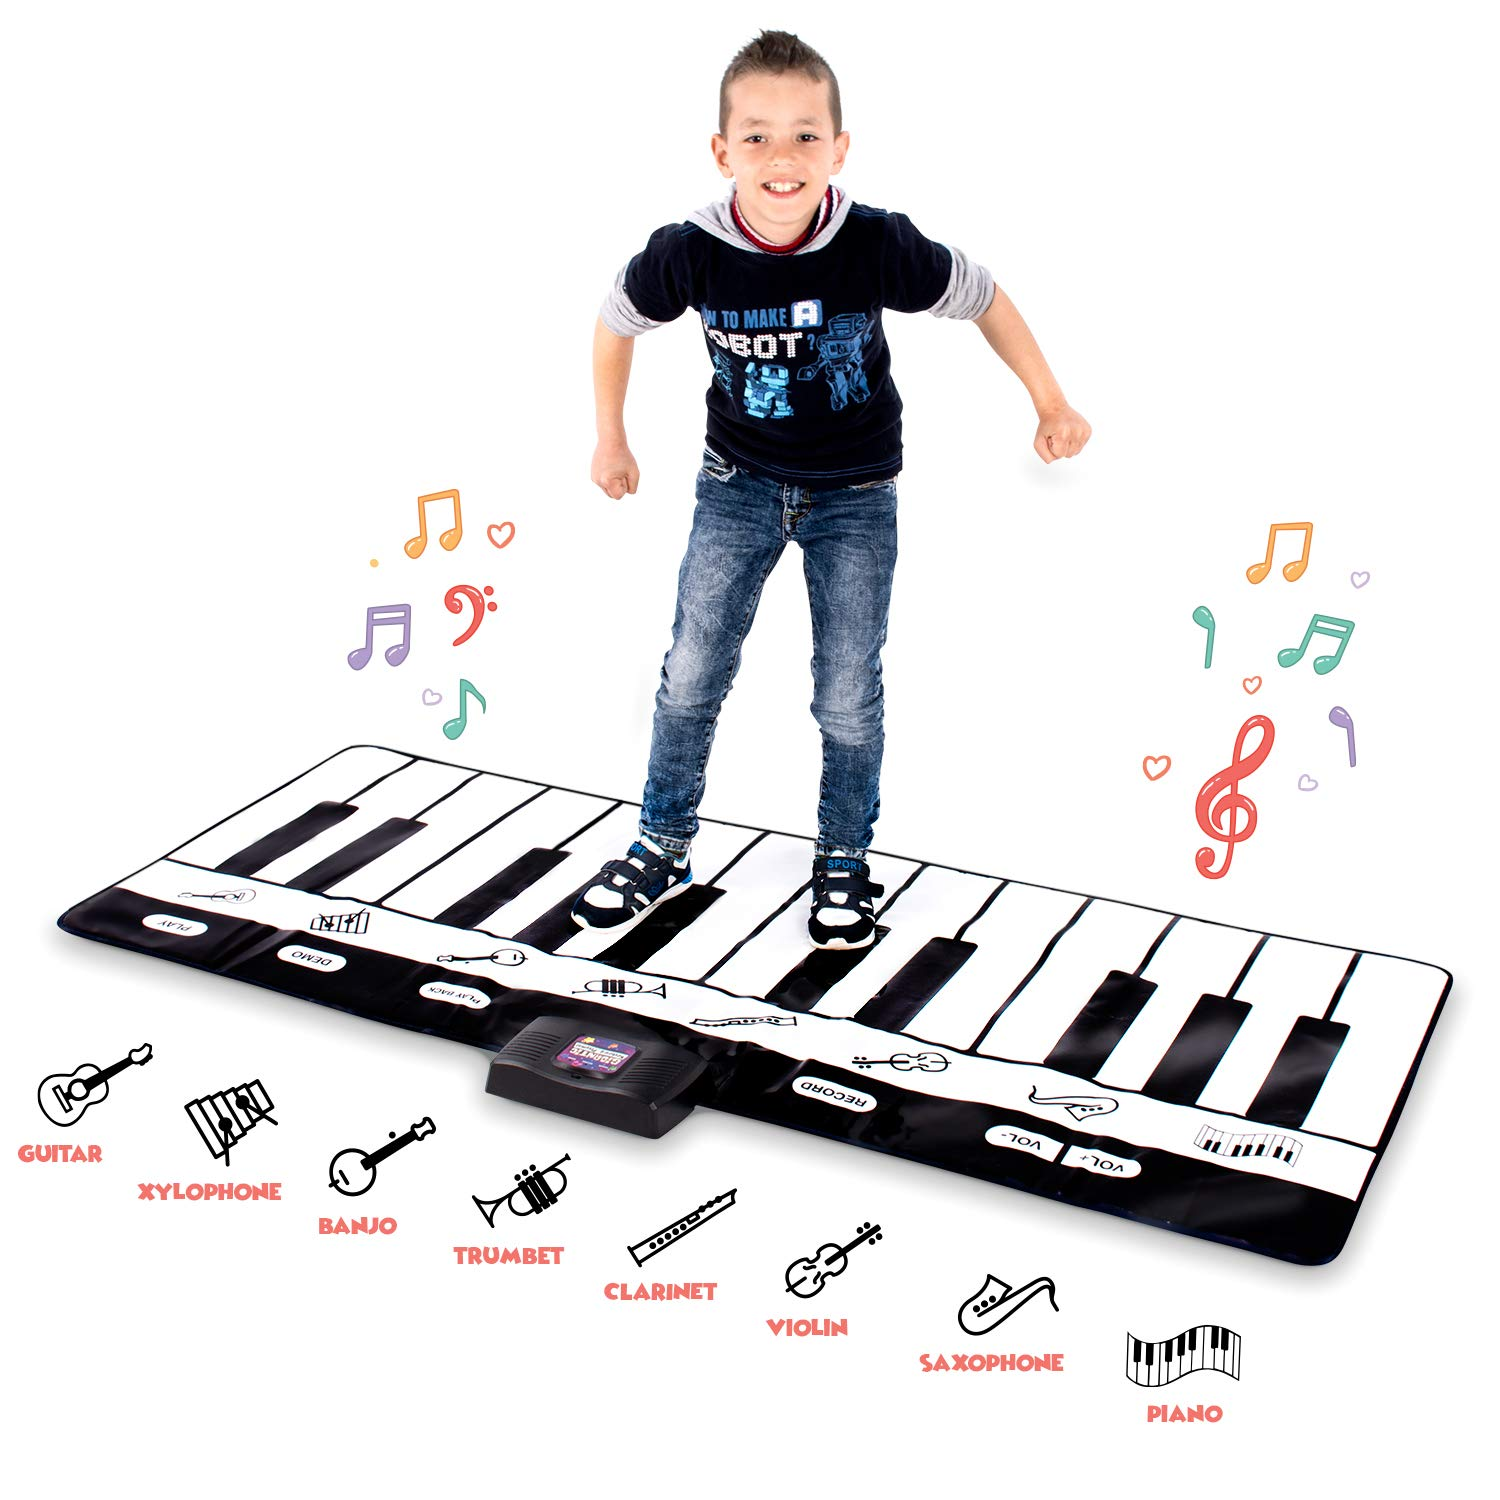 Abco Tech Giant Piano Mat - Jumbo Floor Keyboard with Play, Record, Playback and Demo Modes - 8 Different Musical Instruments Sound Options - 70in Play Mat - 24 Keys by Abco Tech